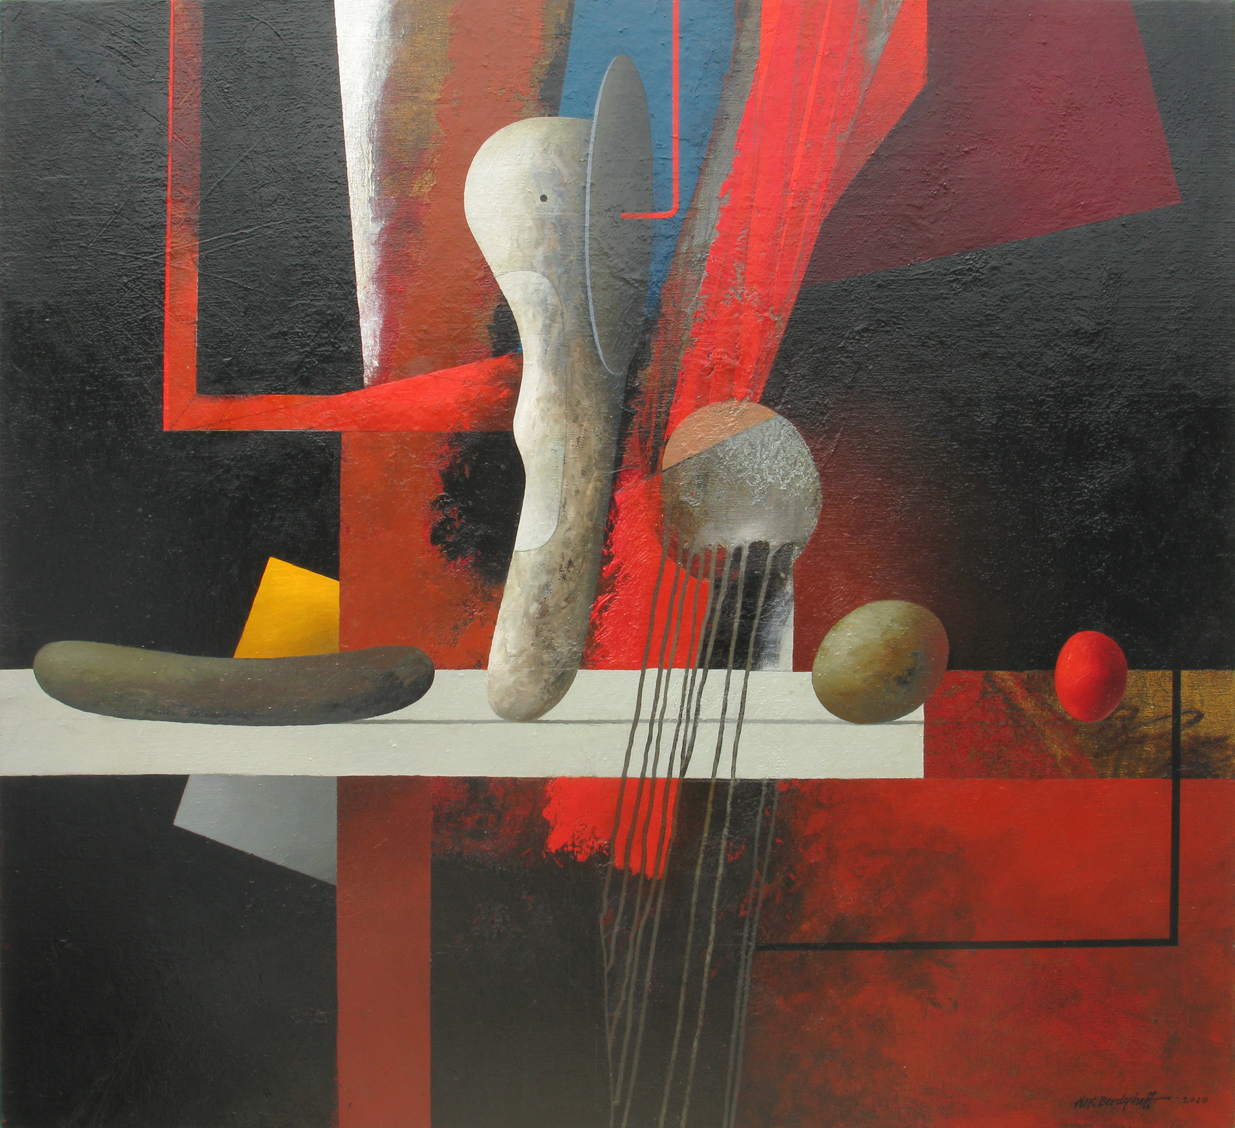 RED, BLACK AND FRAGMENTS, OIL ON CANVAS, 110X120CM, 2010